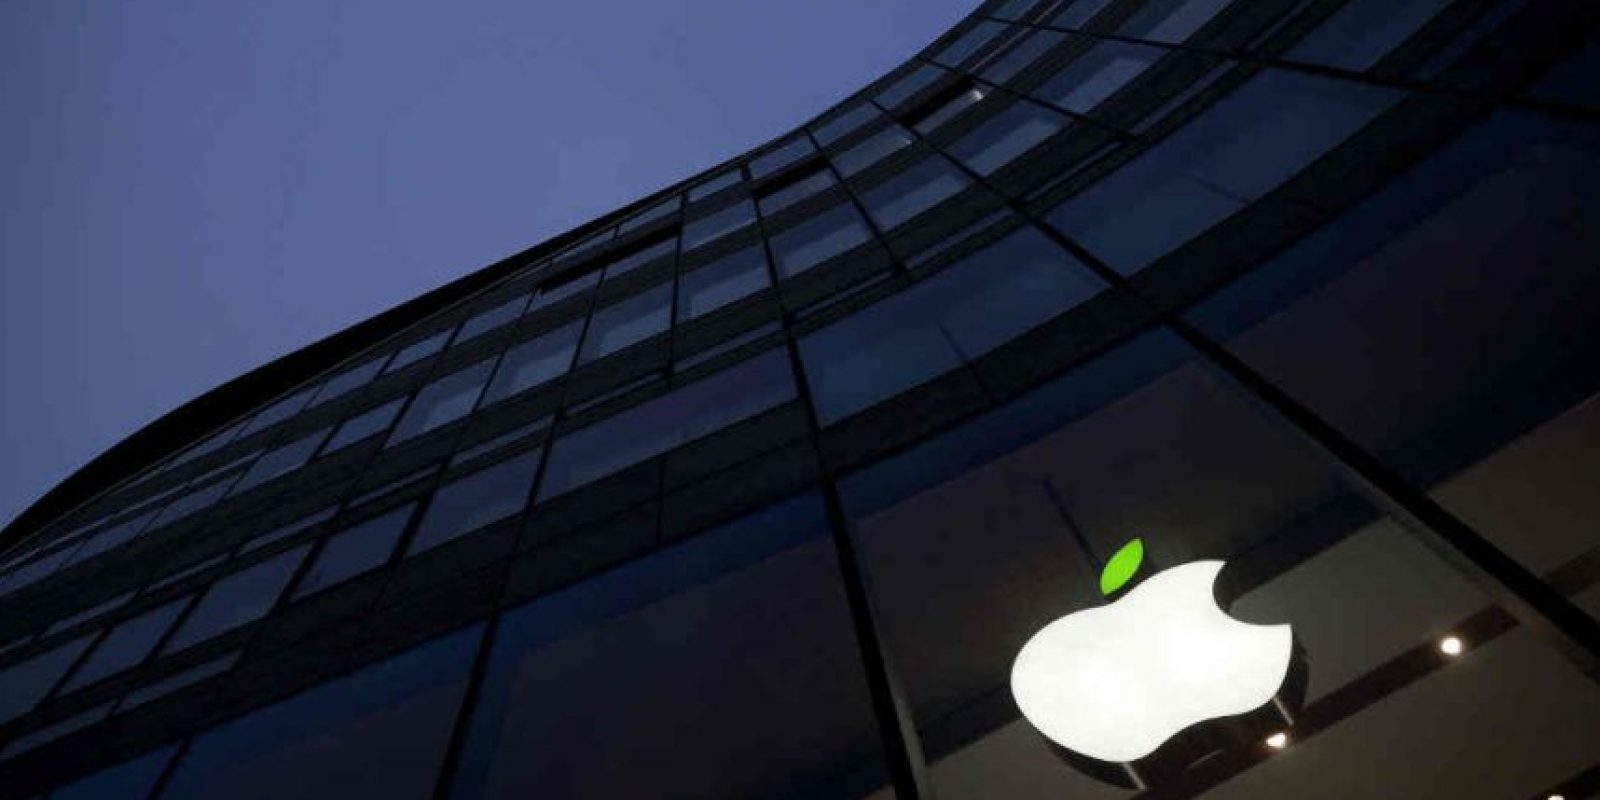 Apple estuvo en una batalla legal contra el FBI durante meses. Foto: Getty Images